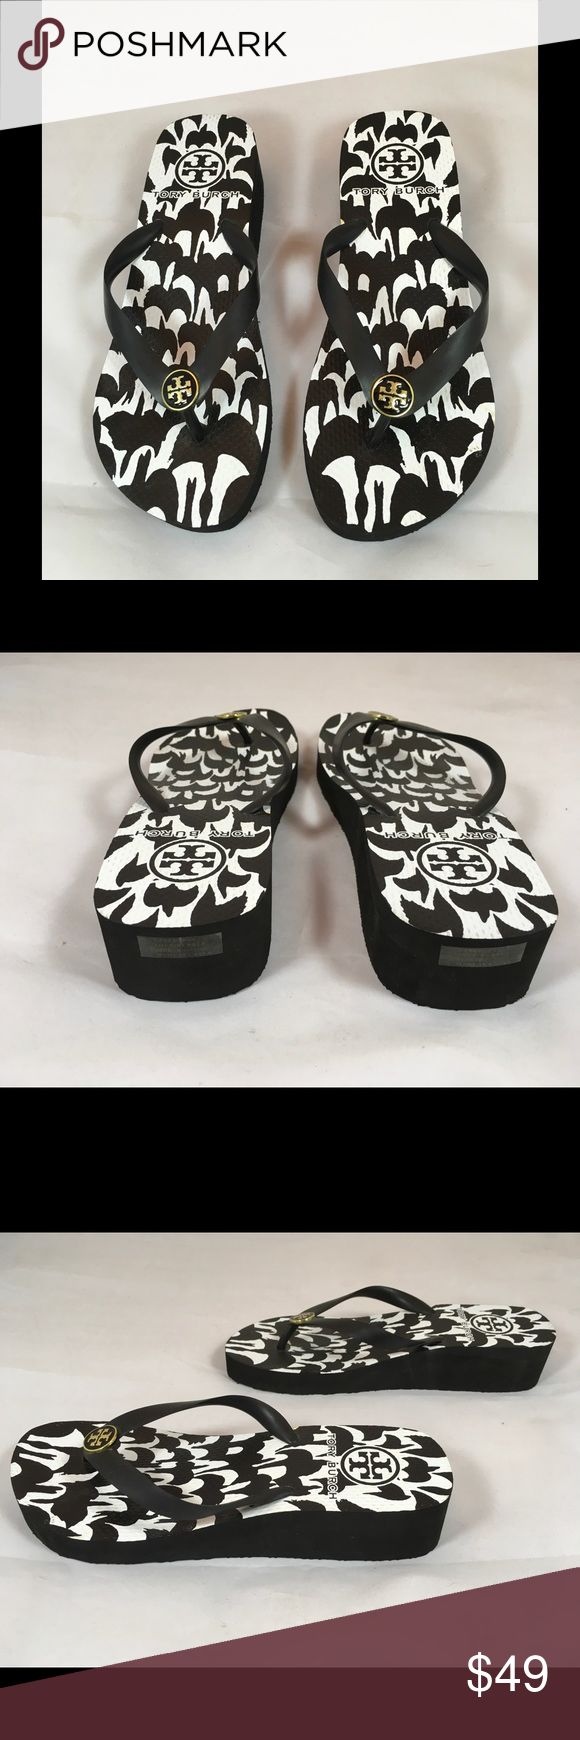 "Tory Burch Black and White Wedge Flip Flops/Sandal Black and white wedge flip flop/sandal Heel height 1.5"" Gold-tone hardware. Tory Burch Shoes Sandals"